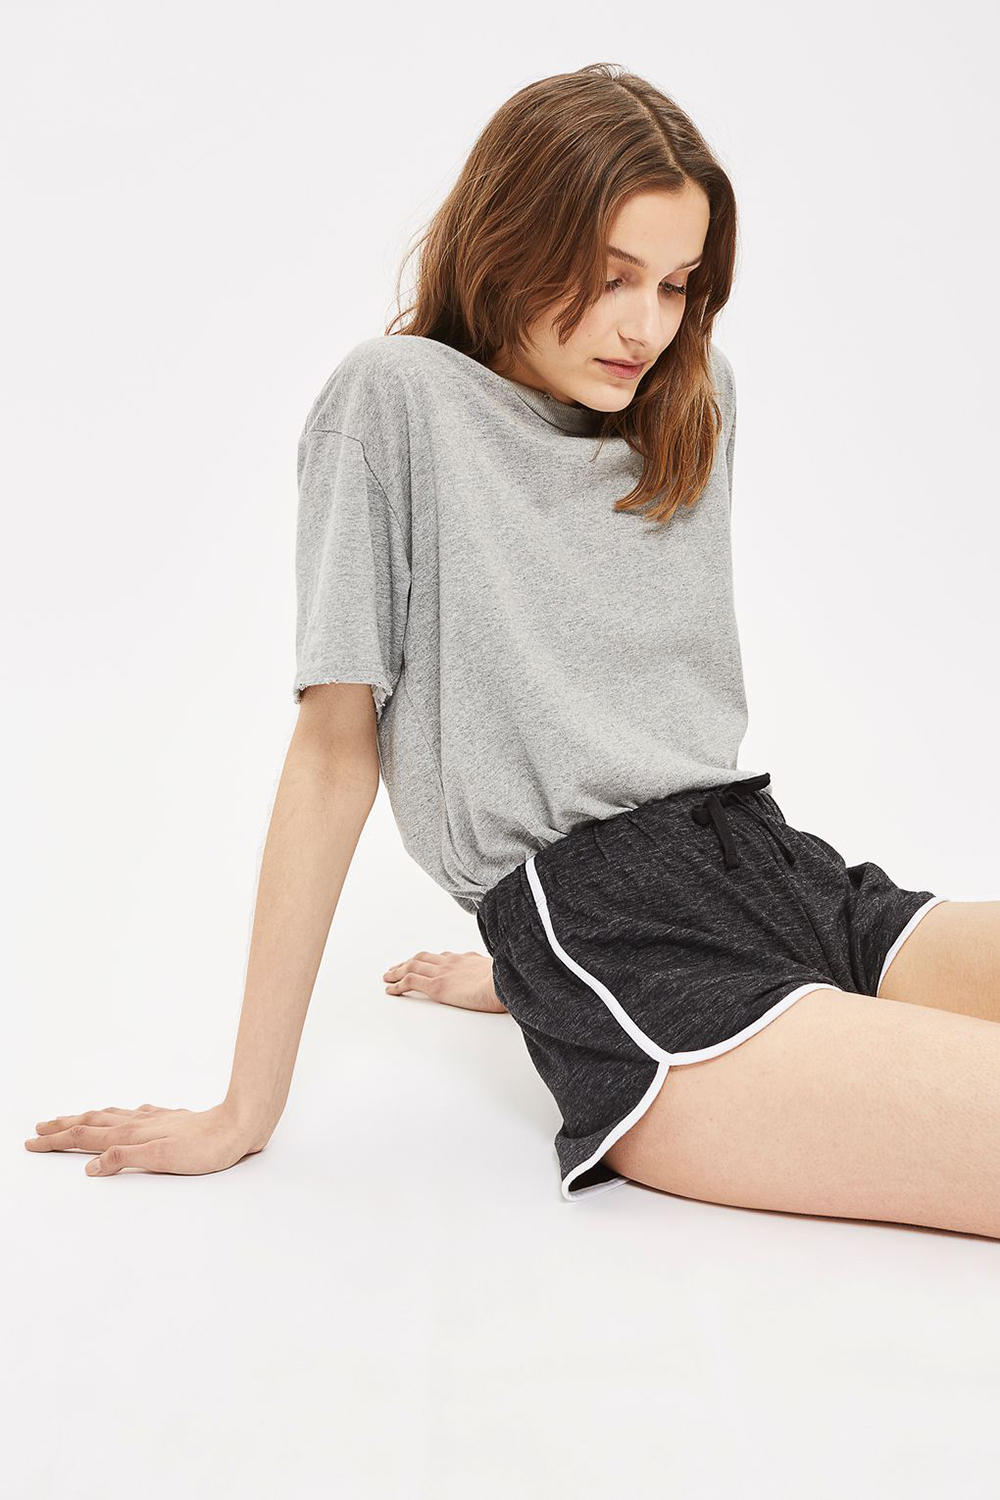 Topshop Sporty Neppy Runner Shorts - Wardrobe Refresh: Topshop for Spring